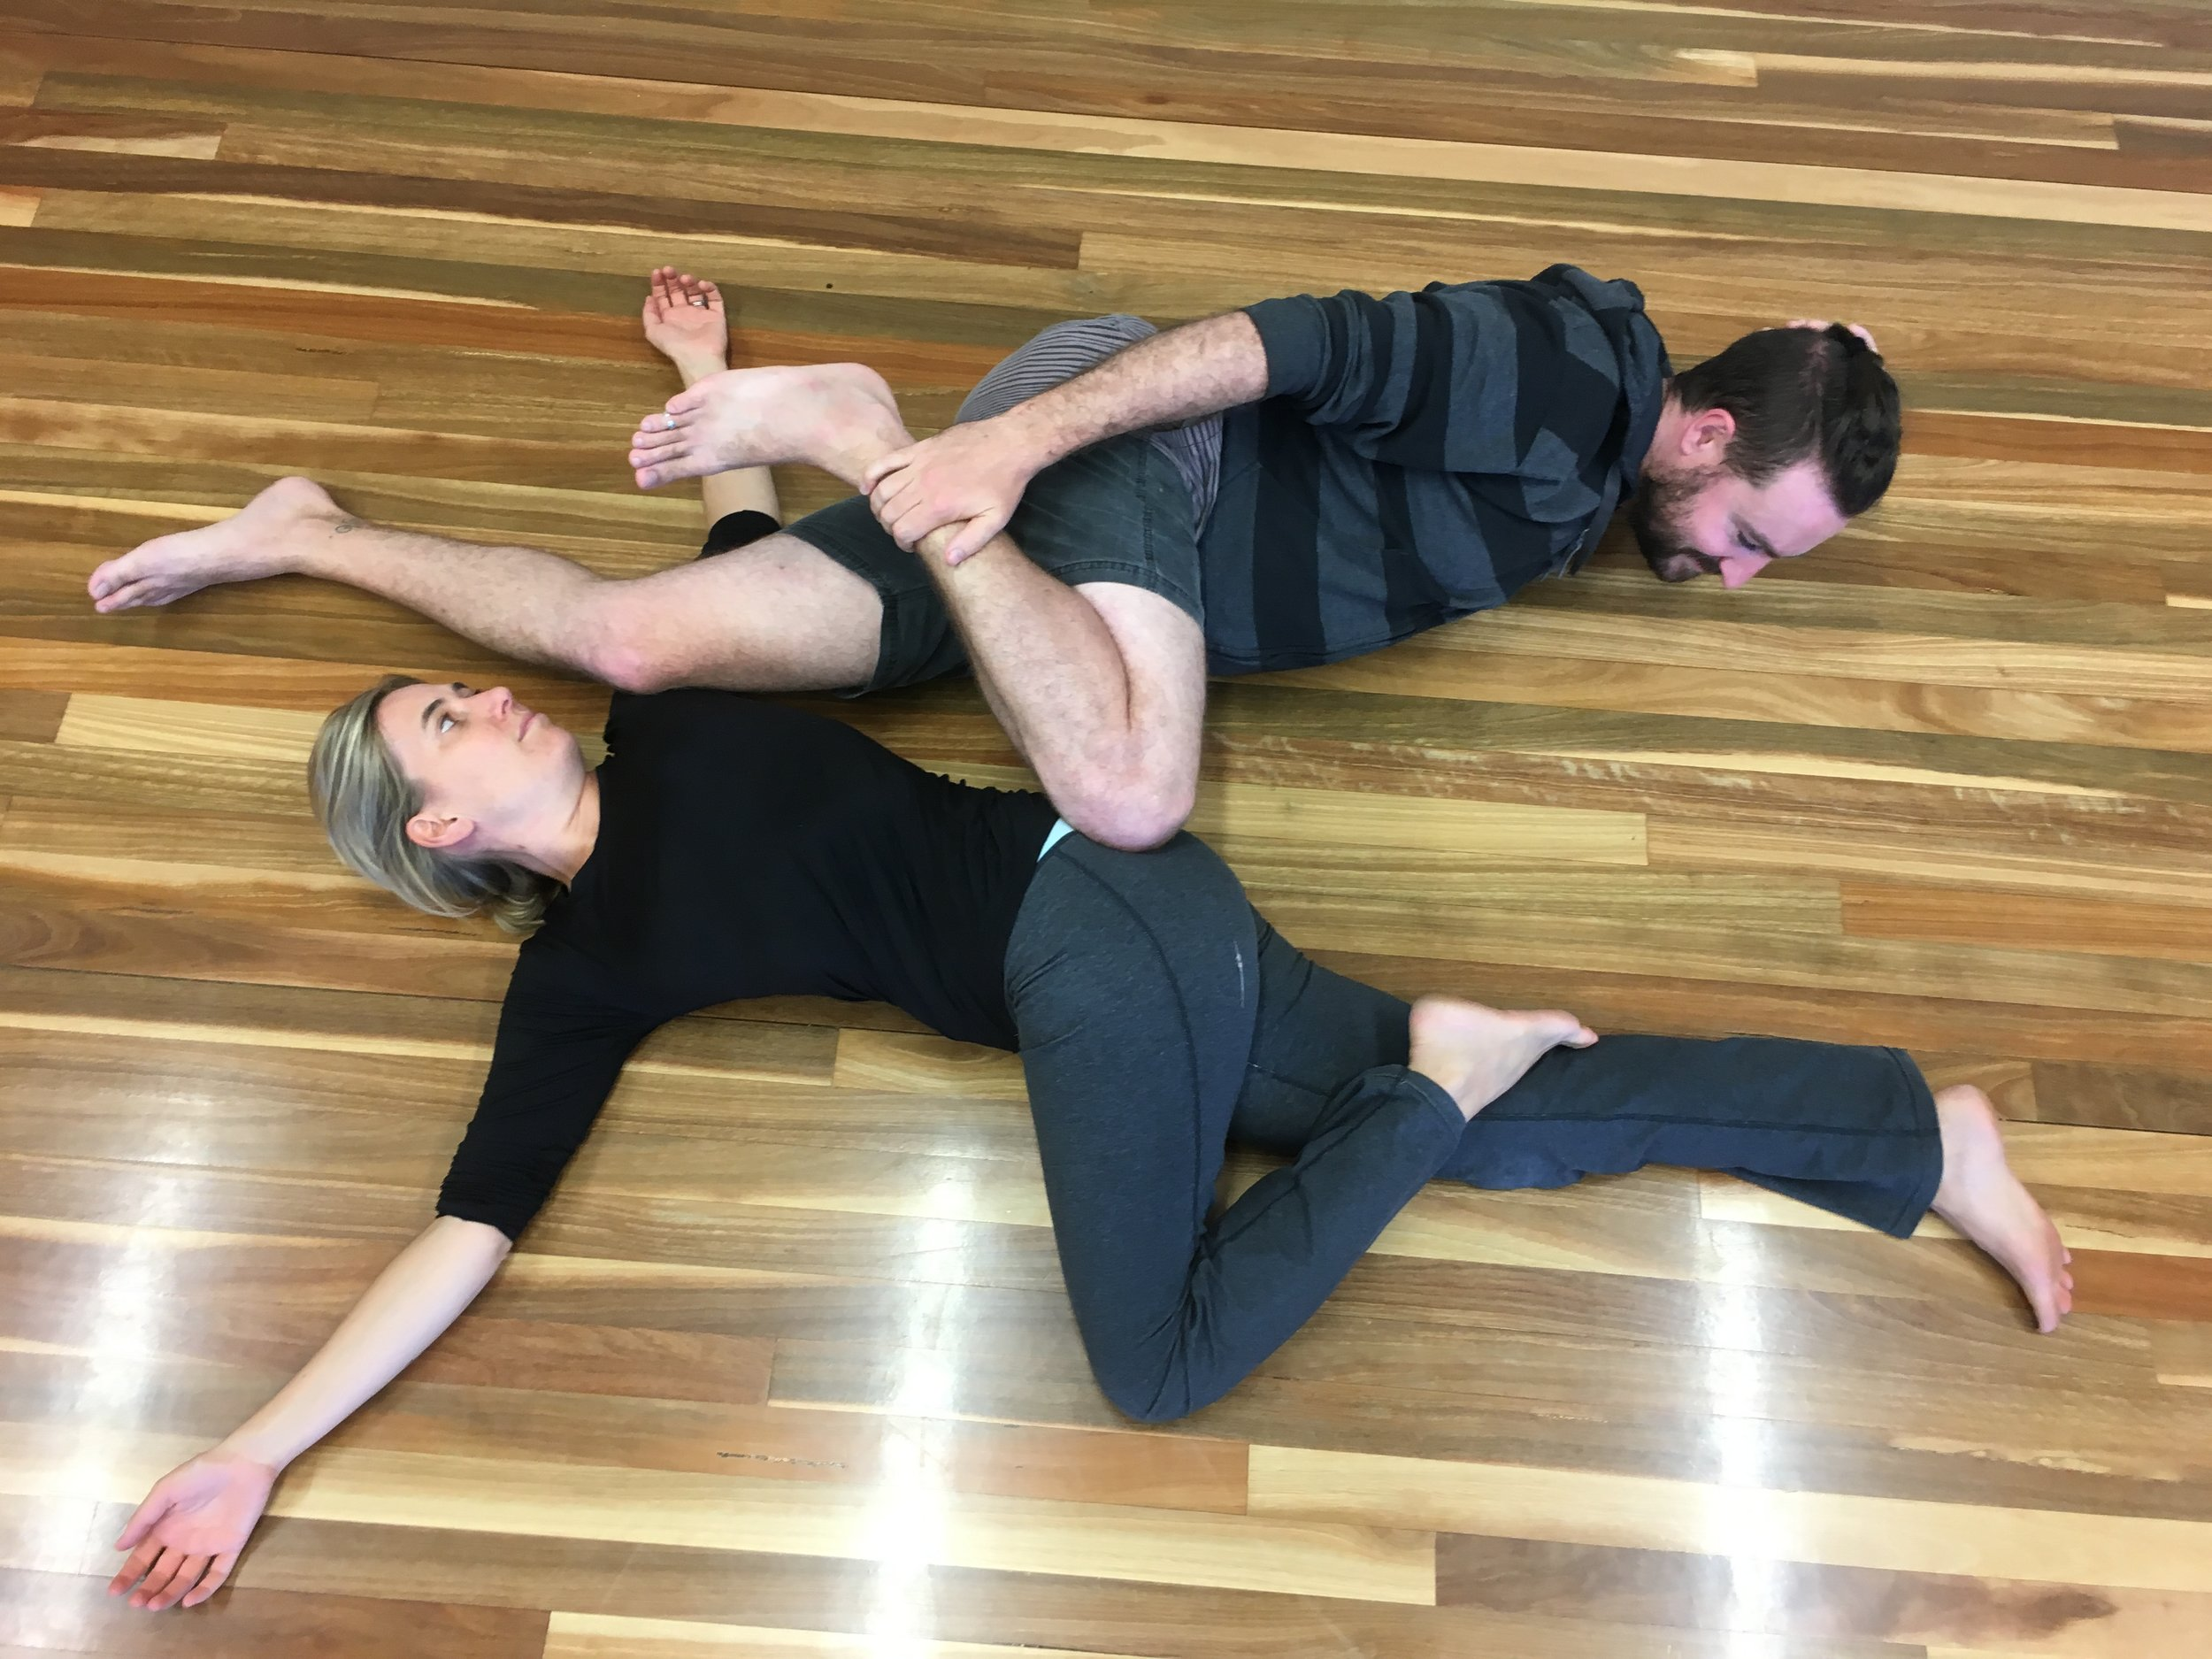 Dan helping Anna stretch without using his hands. His solution of using legs as contact points was effective in this stretch.